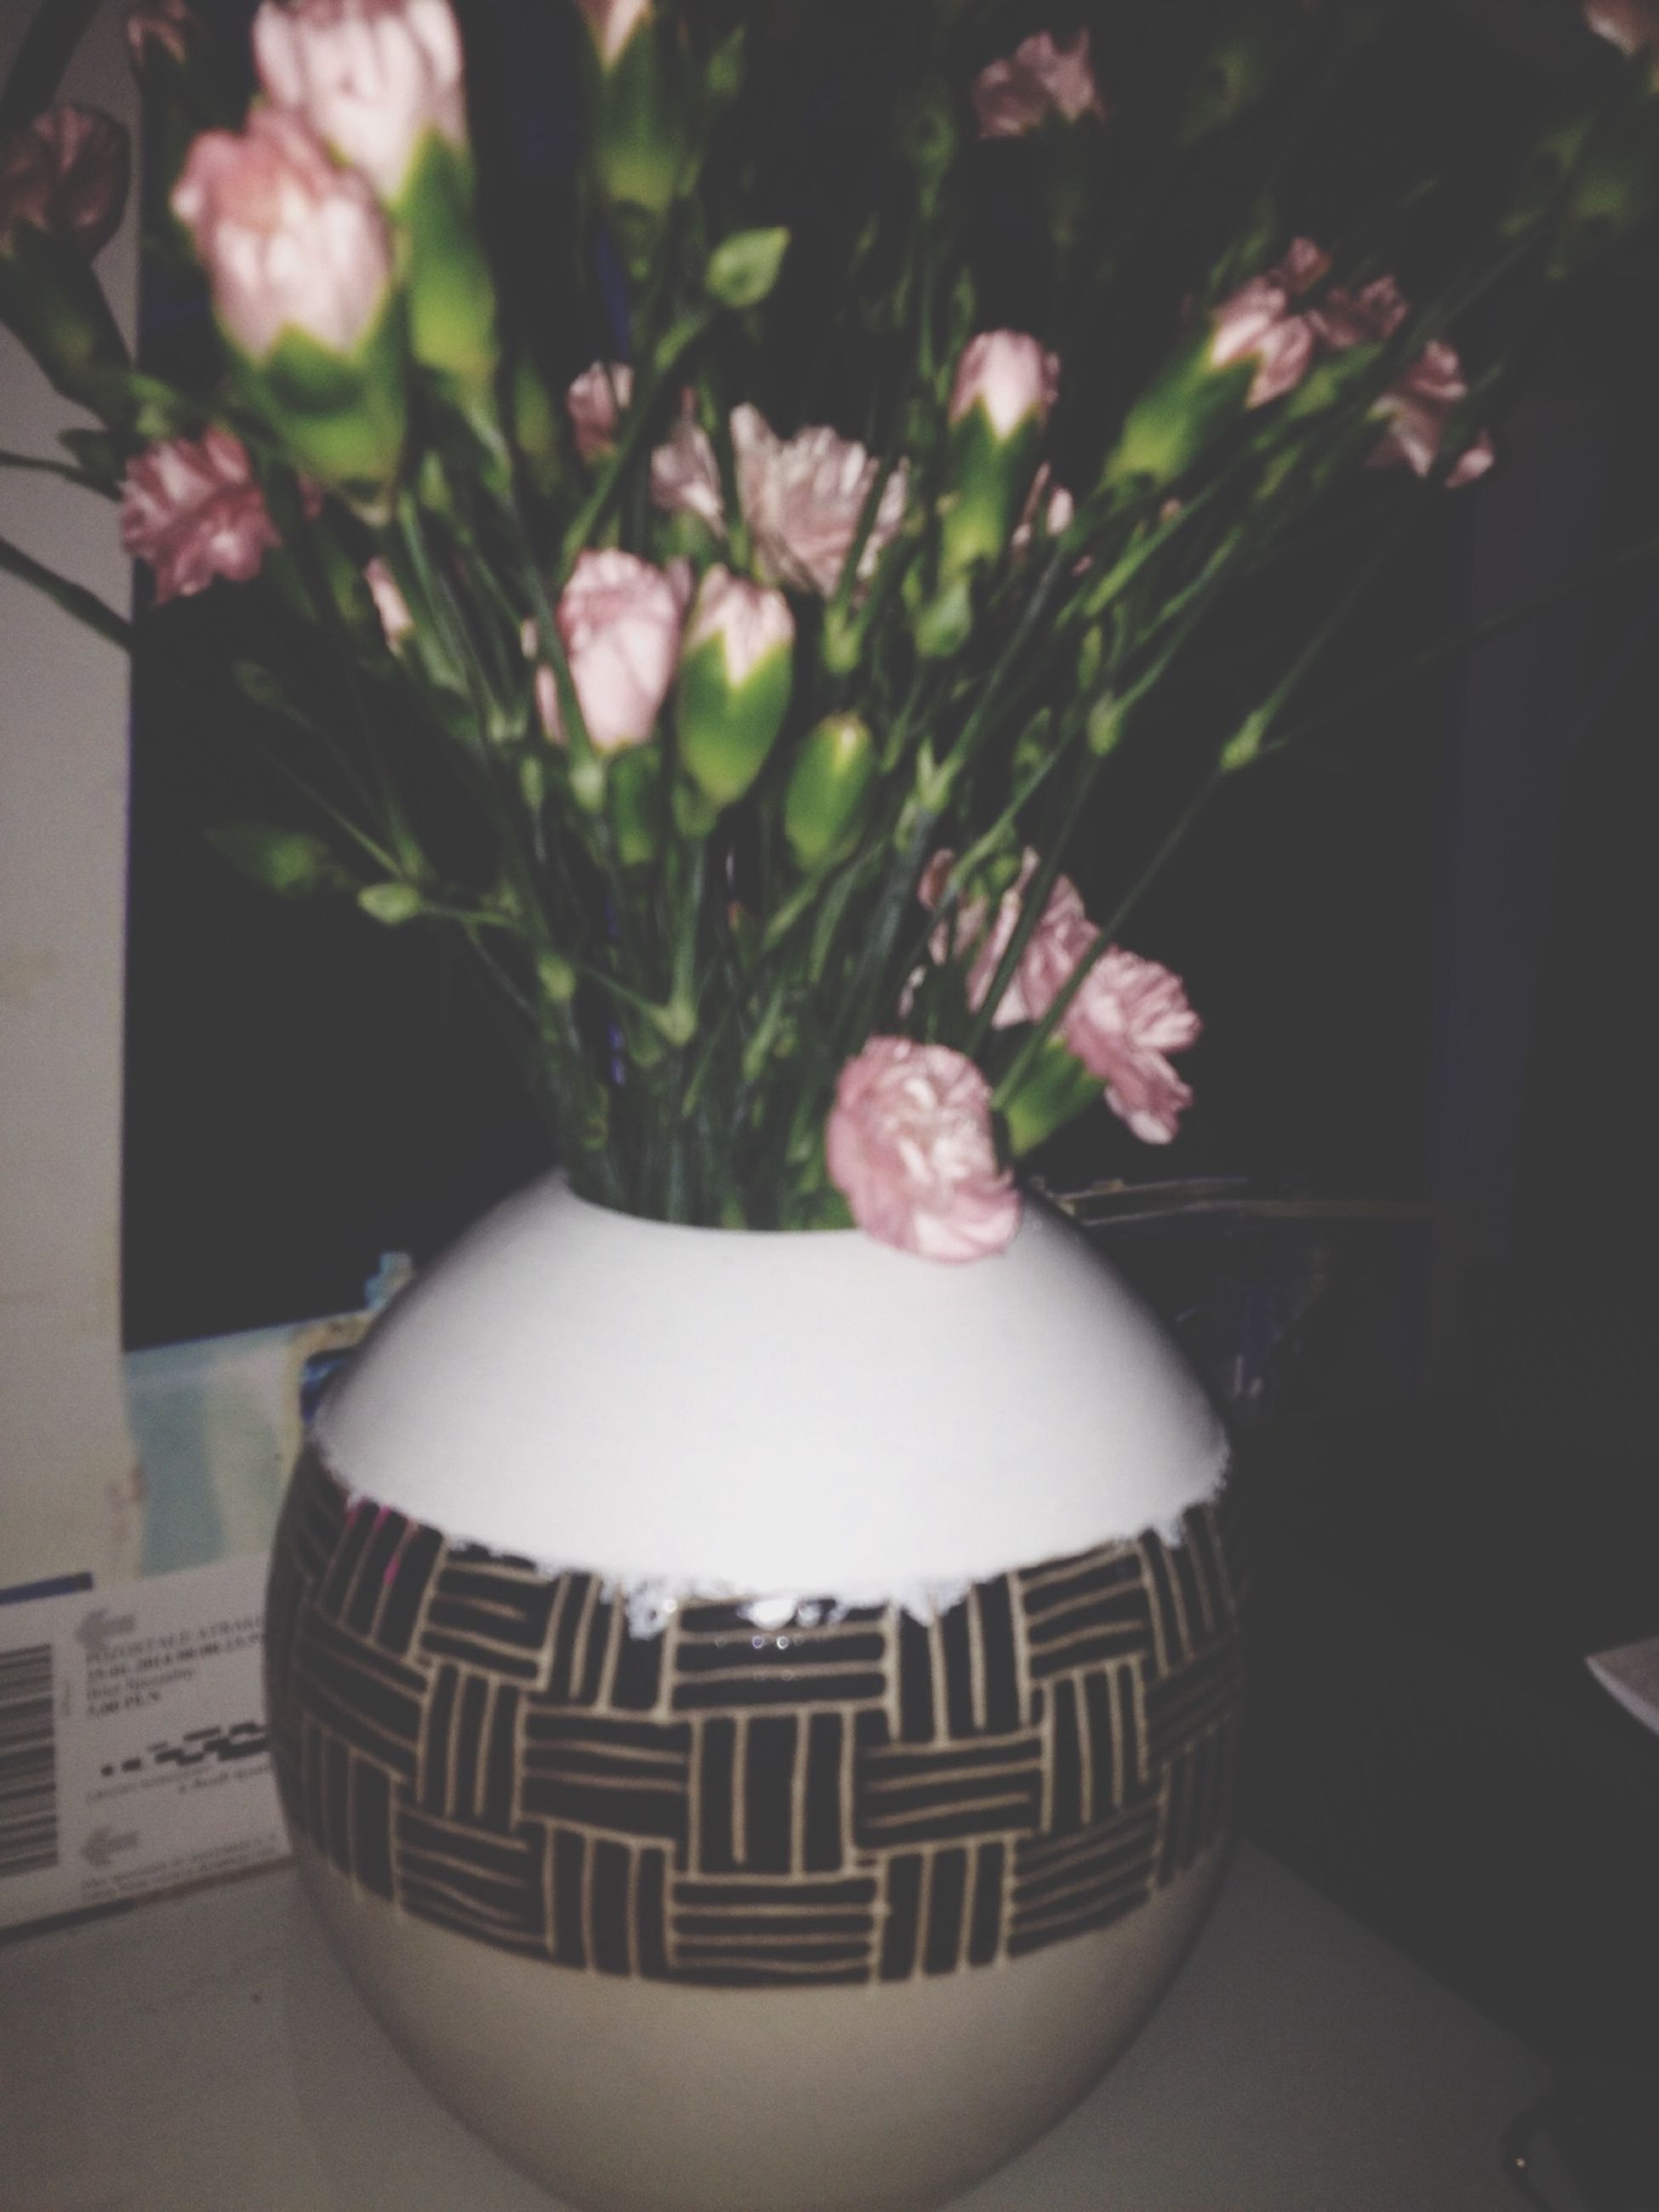 flower, indoors, white color, home interior, vase, plant, potted plant, freshness, close-up, table, holding, front view, decoration, fragility, growth, wall - building feature, day, bouquet